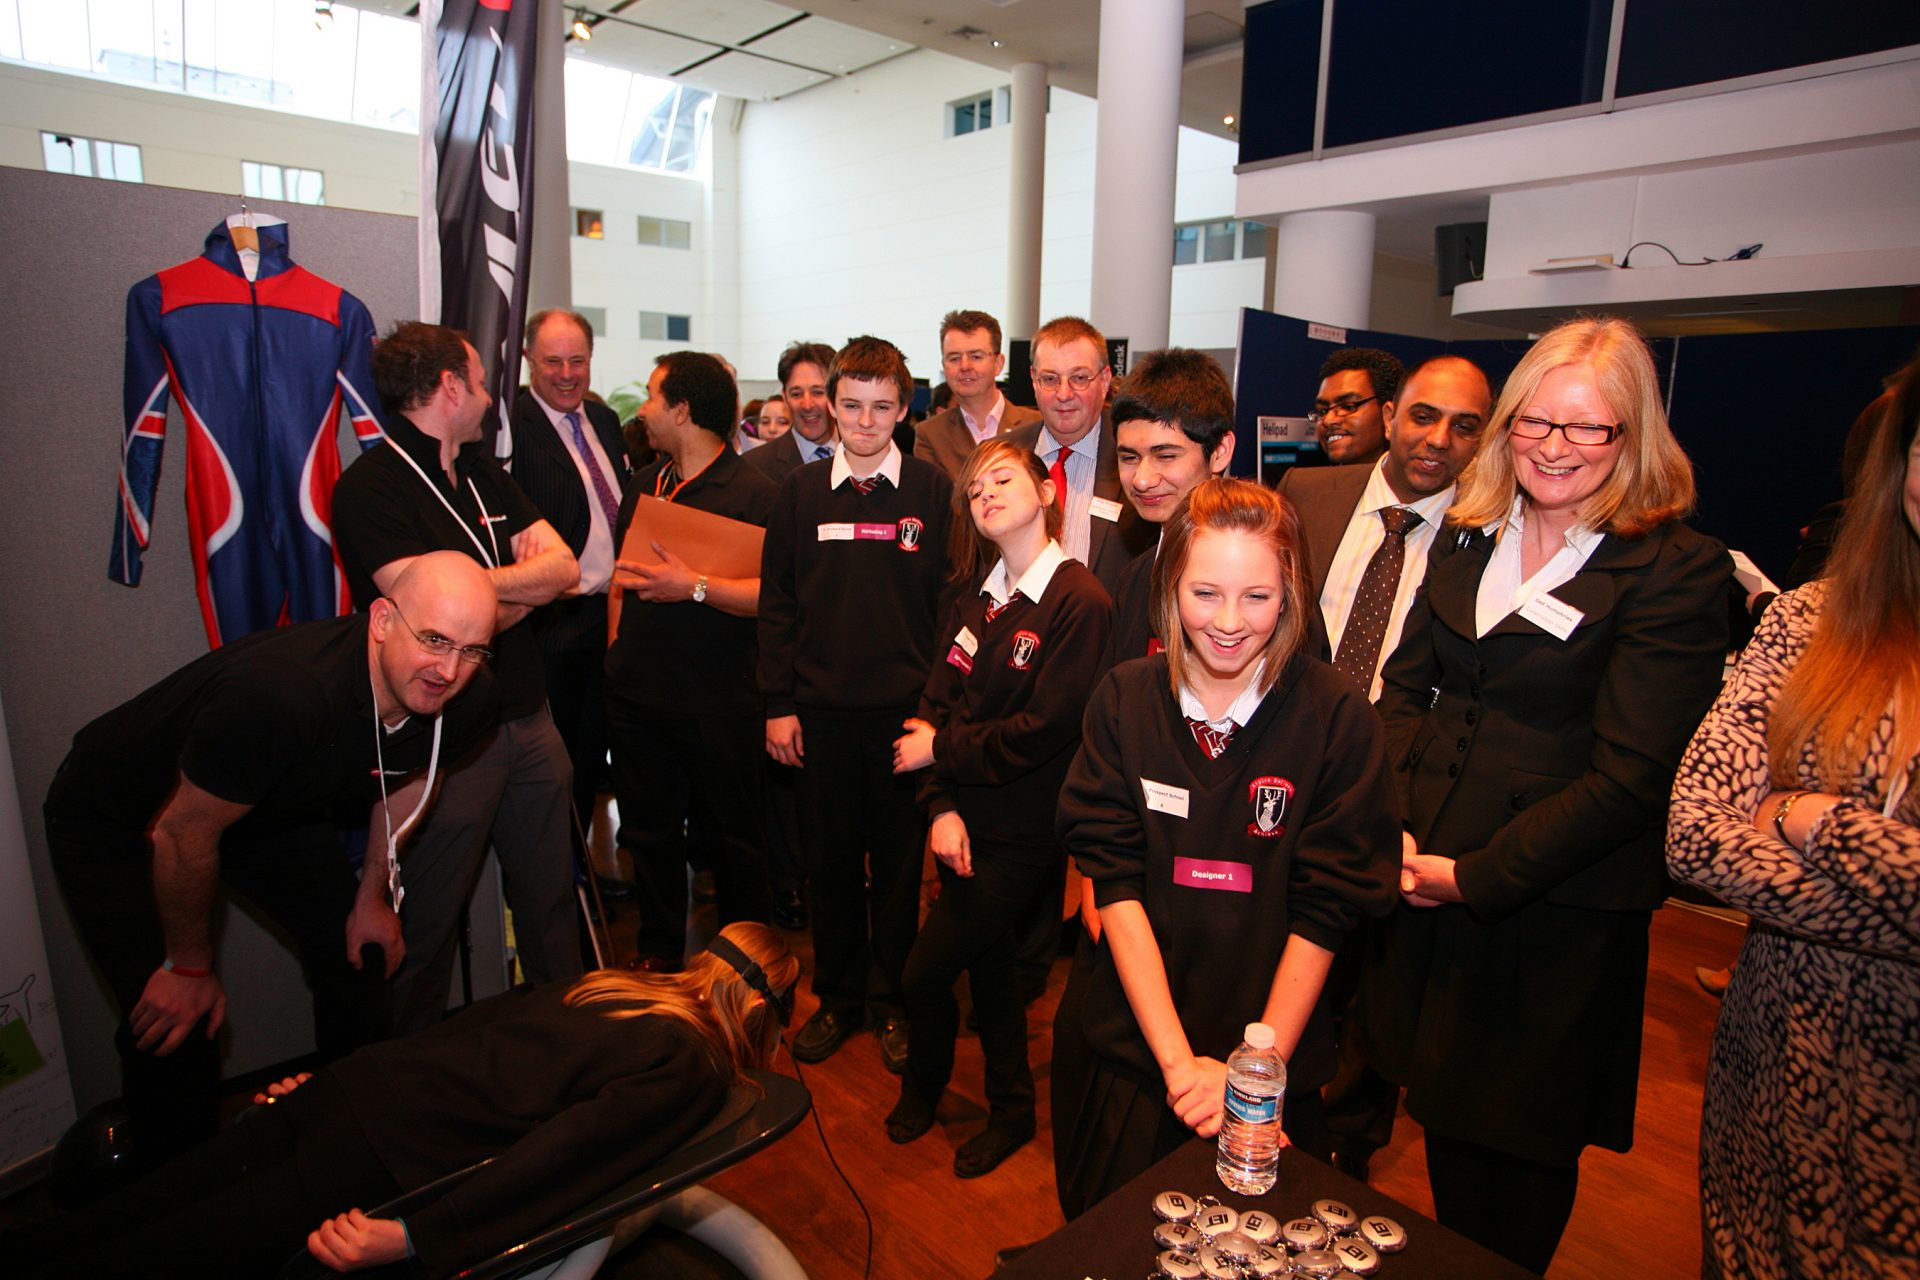 TeenTech comes to Humberside in July